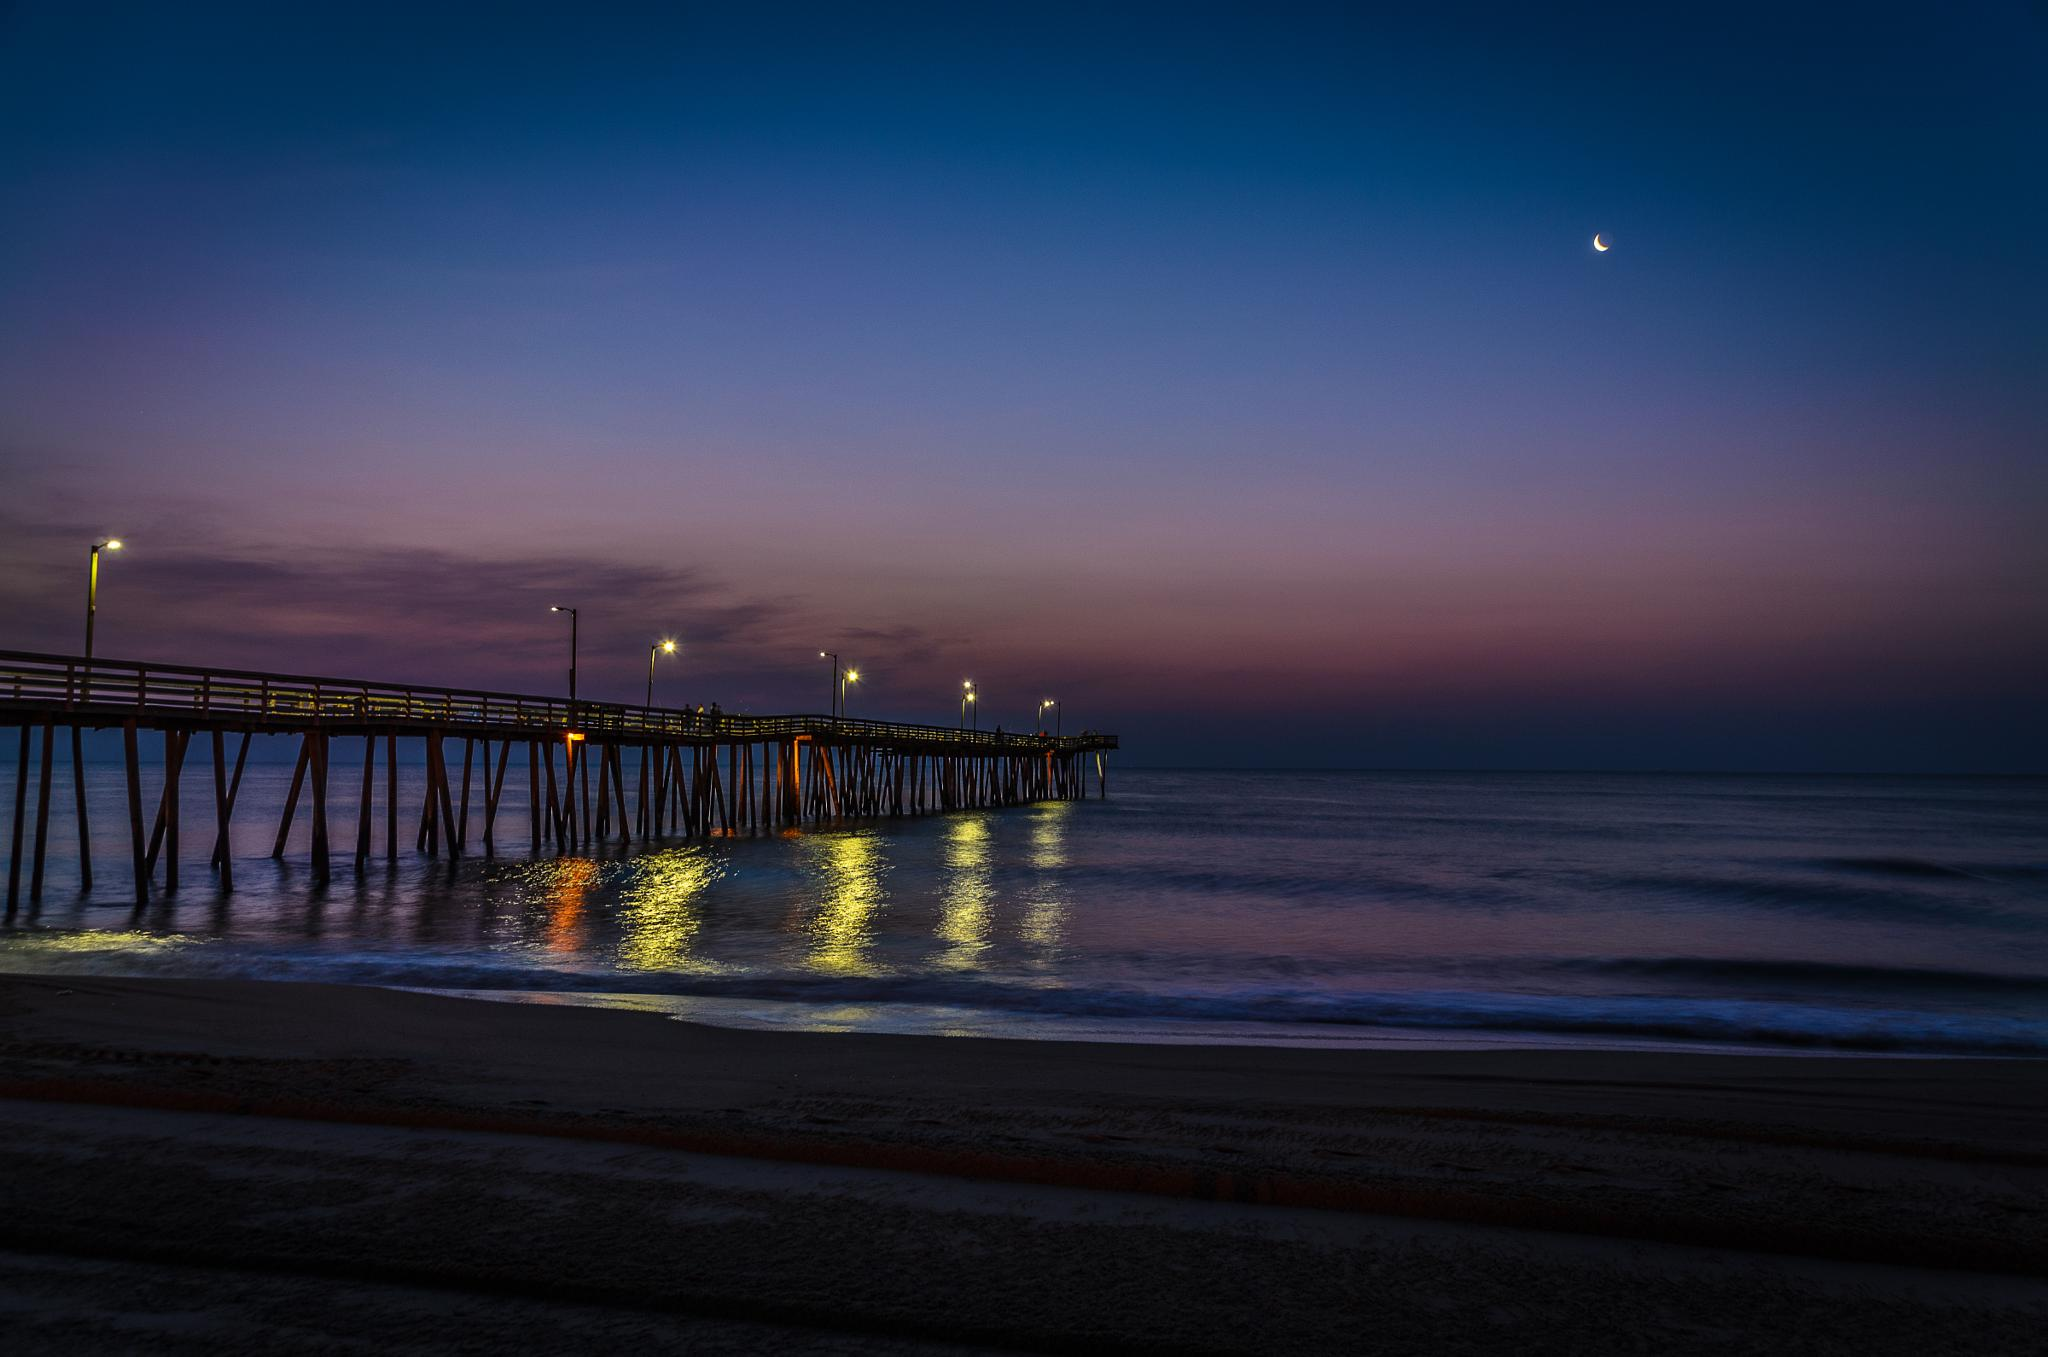 Presunrise at the Virginia Beach Fishing Pier & Crescent Moon by CharlieWilson